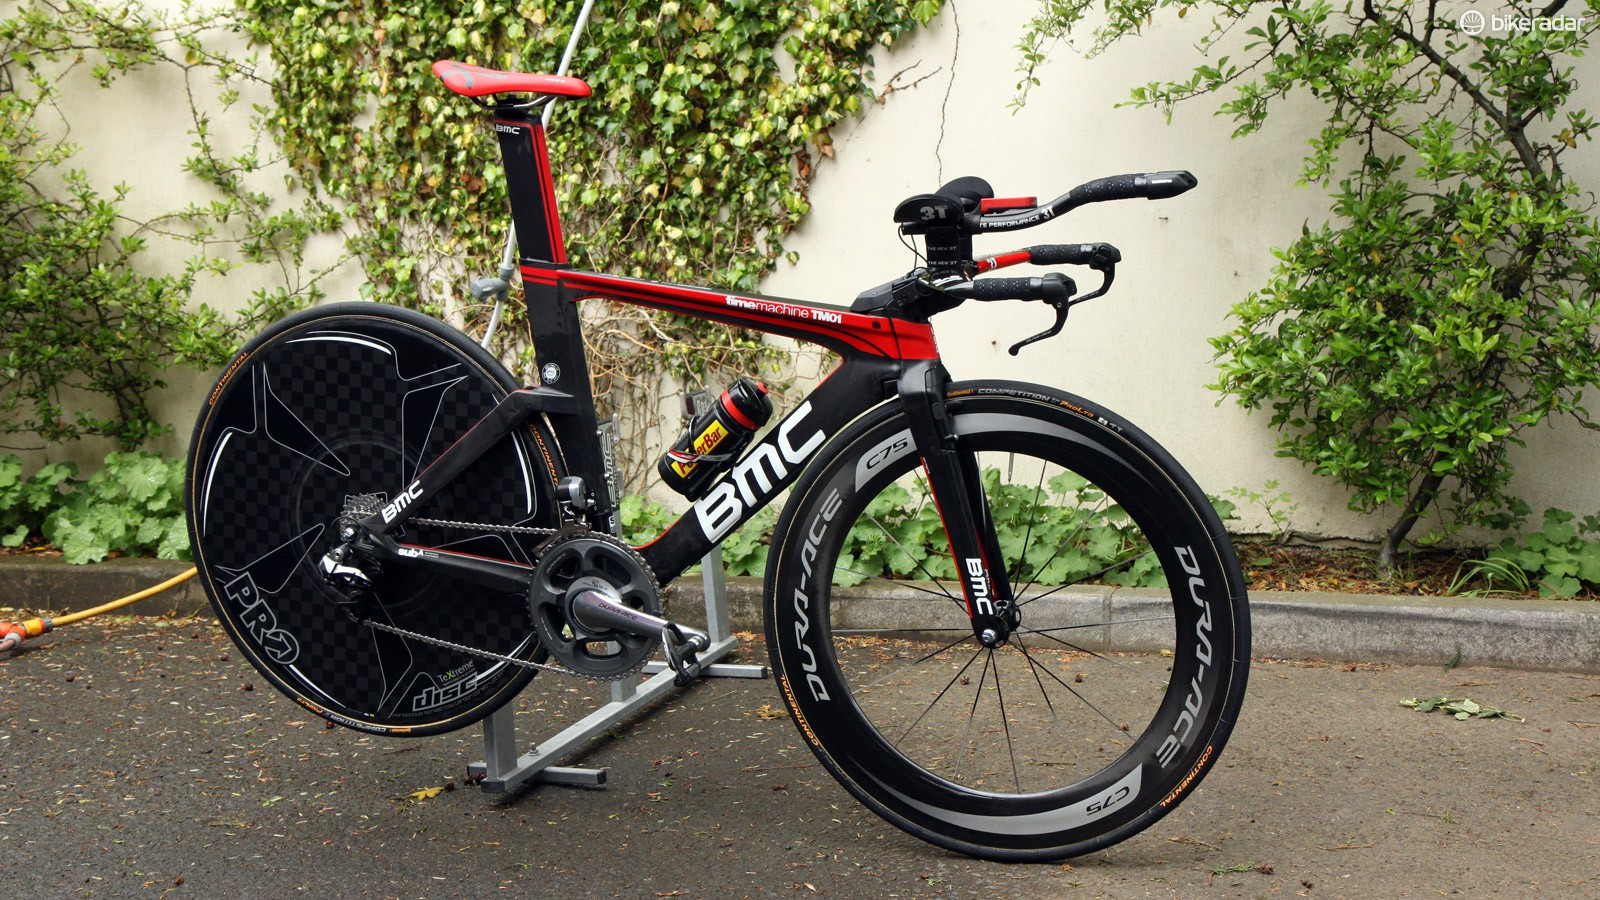 American rider Brent Bookwalter (BMC) is using this BMC TimeMachine TM01 for this year's Giro d'Italia time trials